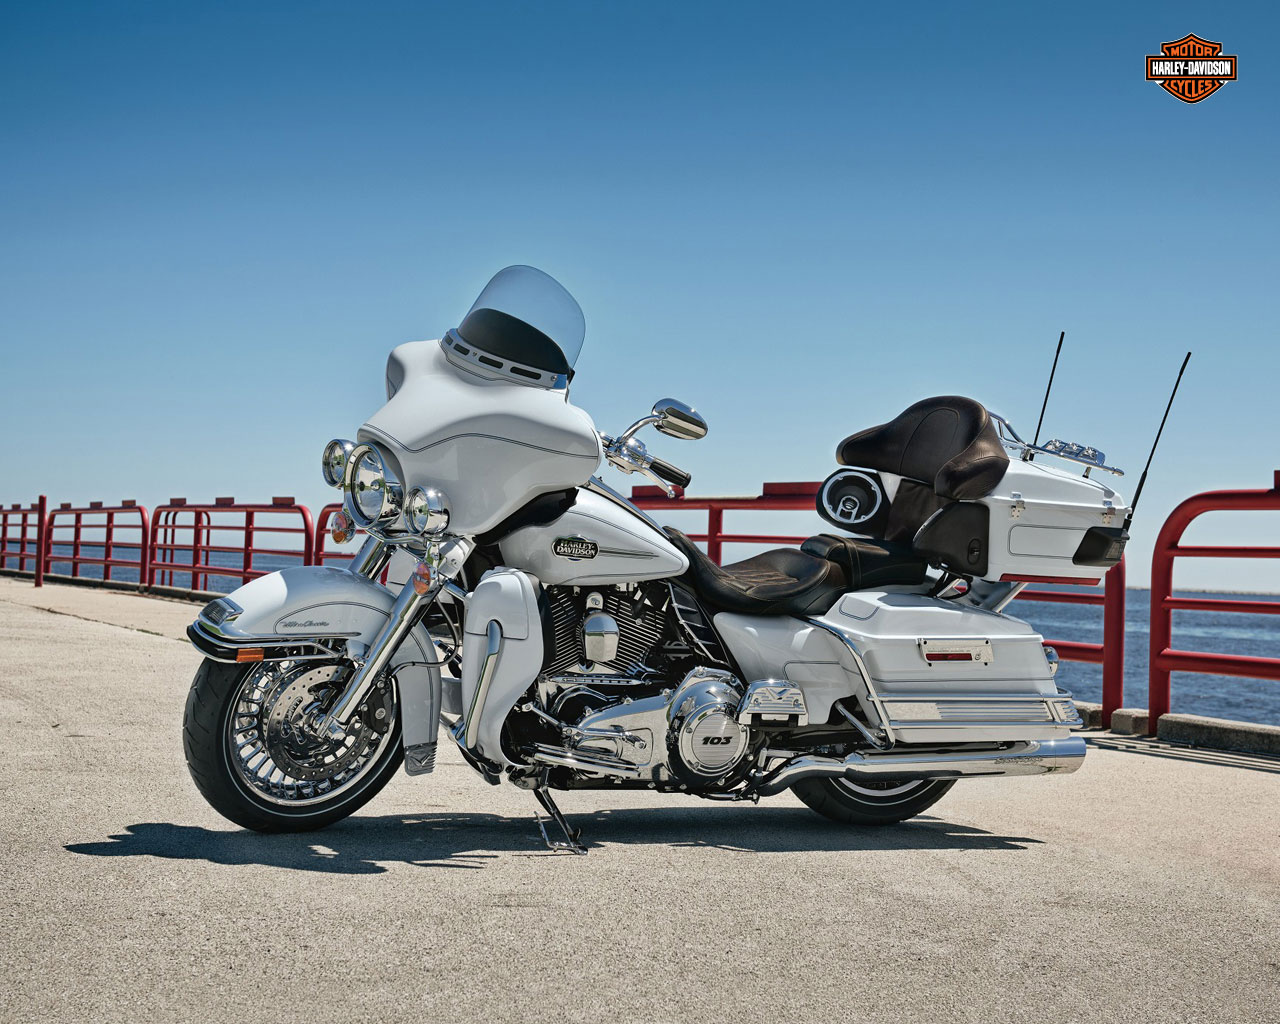 Harley-Davidson FLHTC Electra Glide Classic 2010 #15